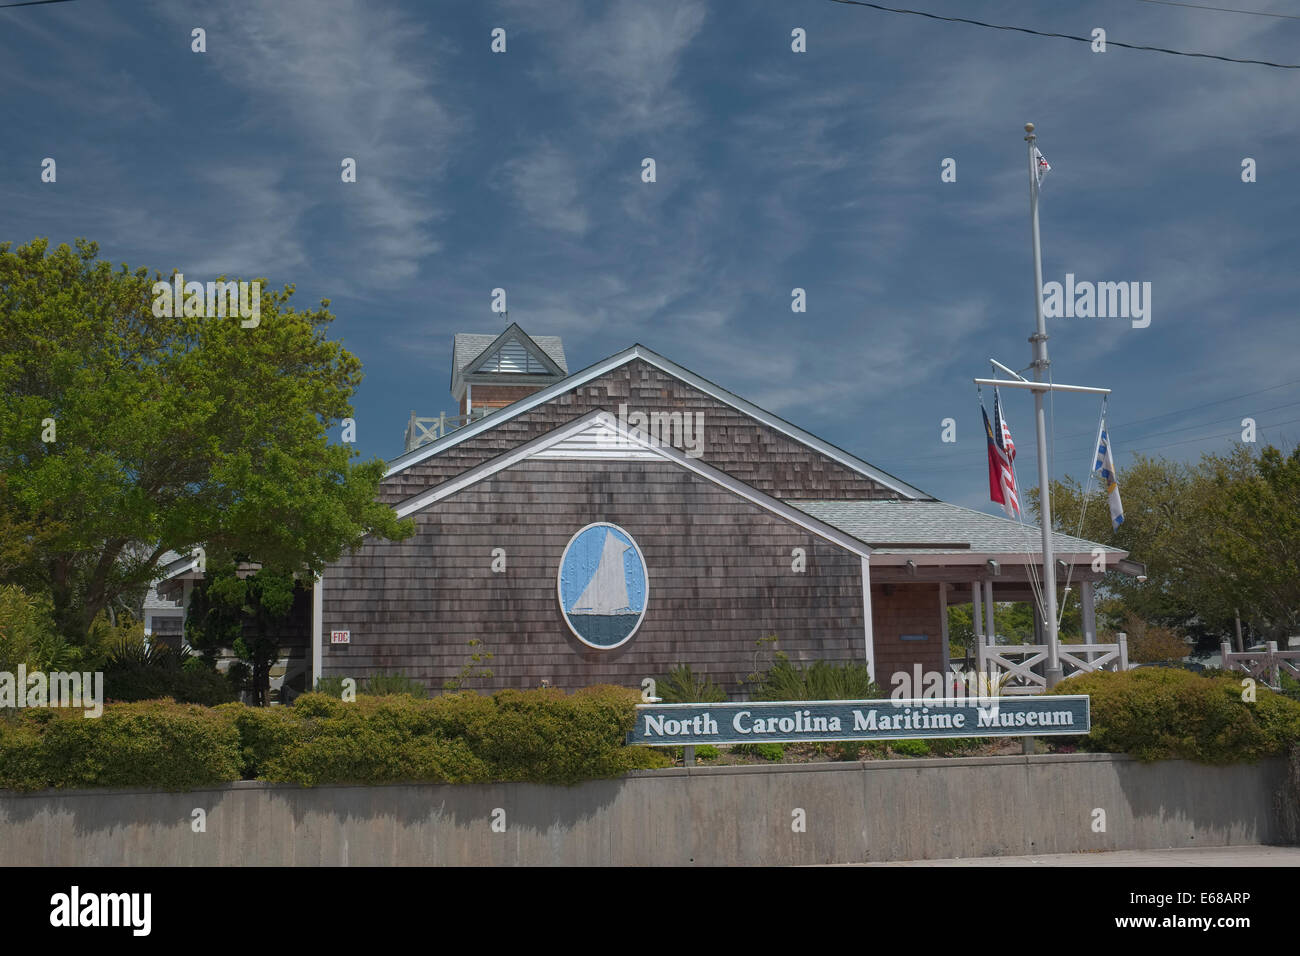 North Carolina Maritime Museum in Beaufort North Carolina. 315 Front Street - Stock Image